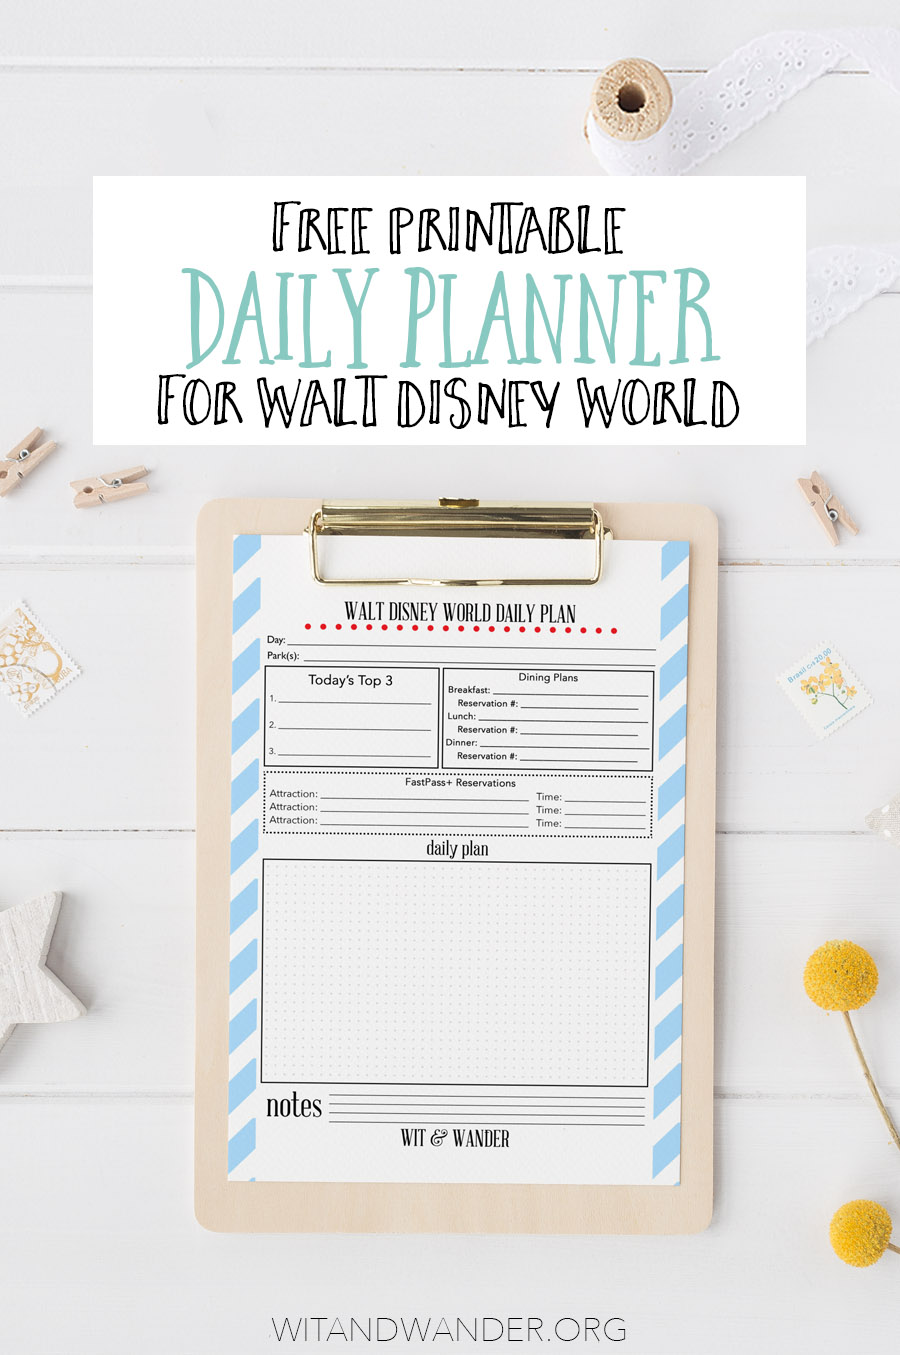 Walt Disney World Daily Planner - Wit & Wander